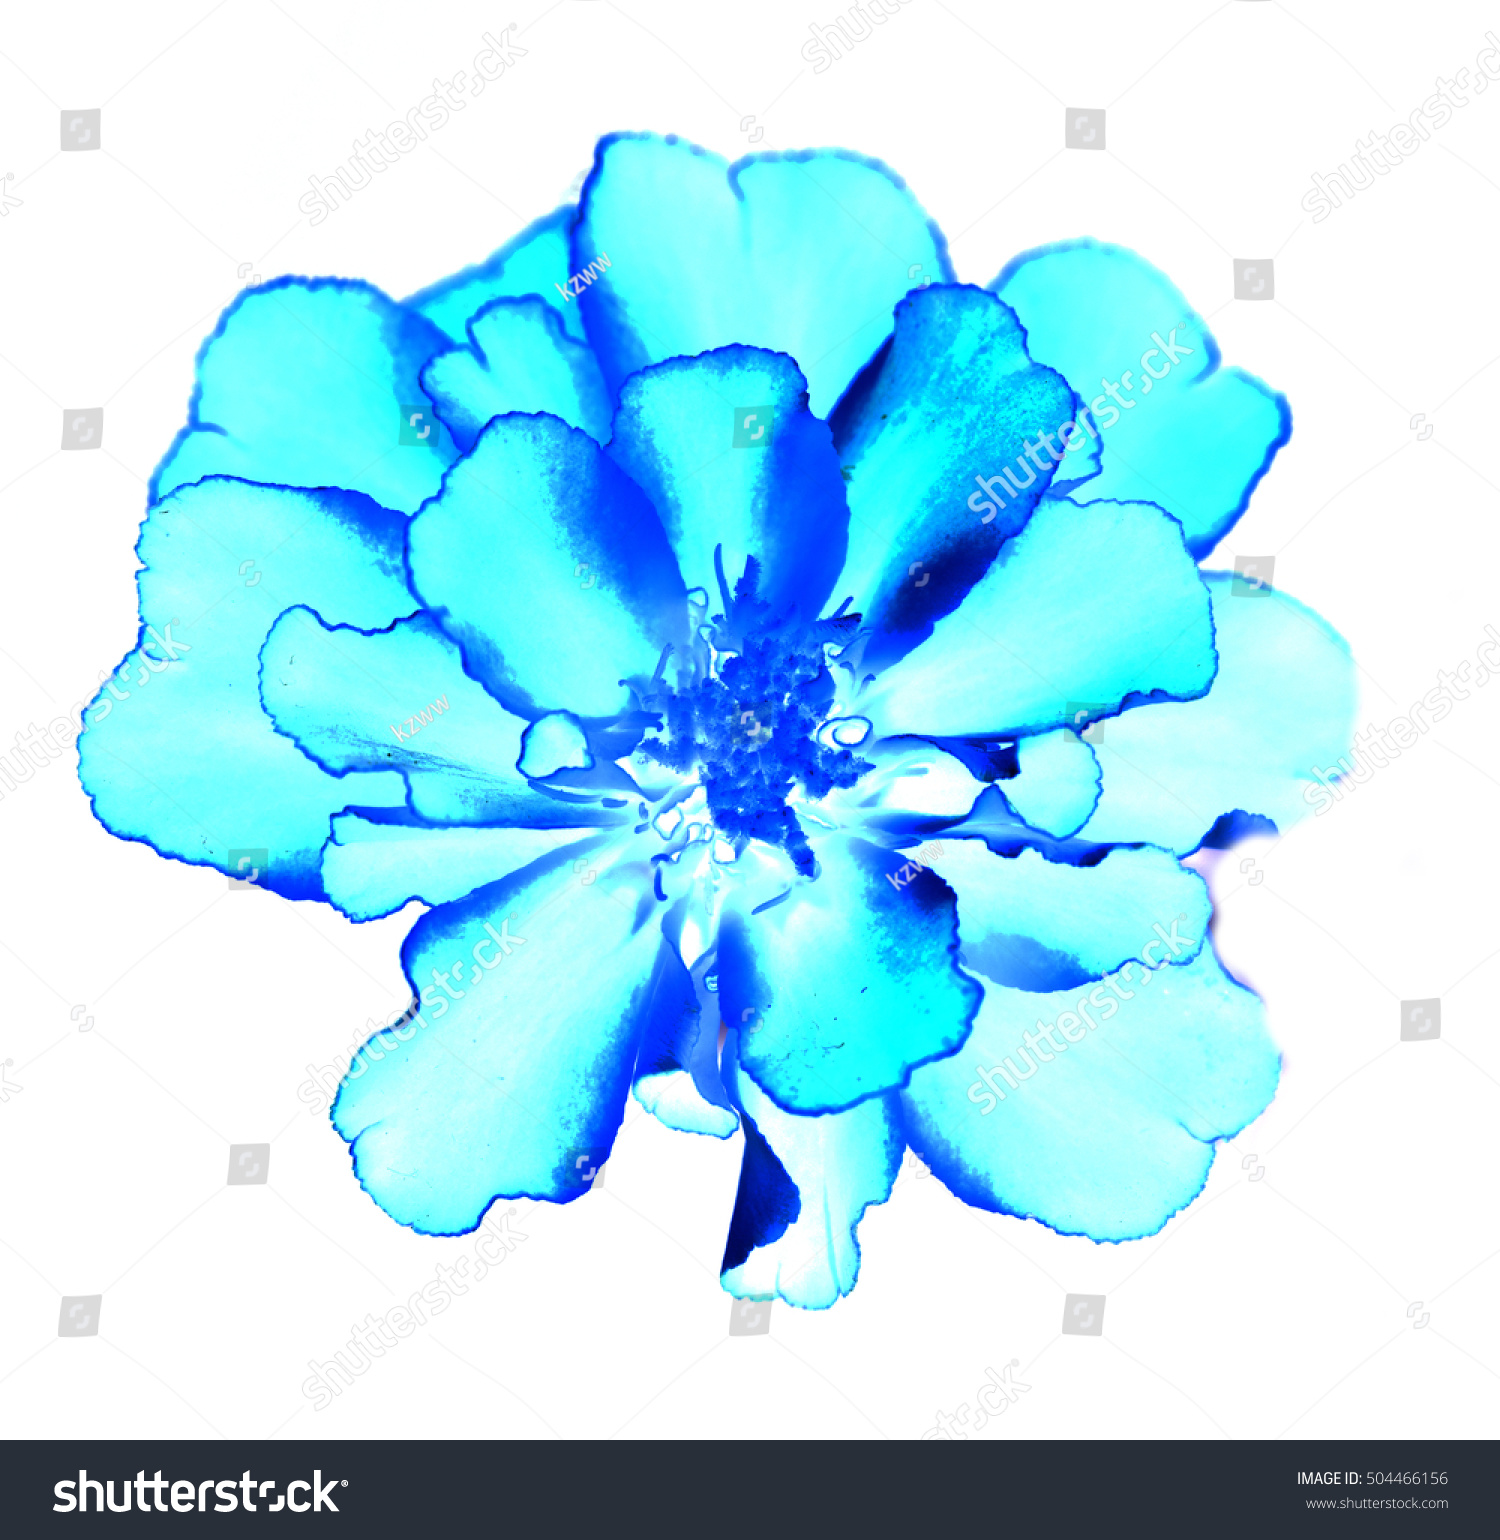 Royalty Free Surreal Exotic Blue Marigold Flower 504466156 Stock